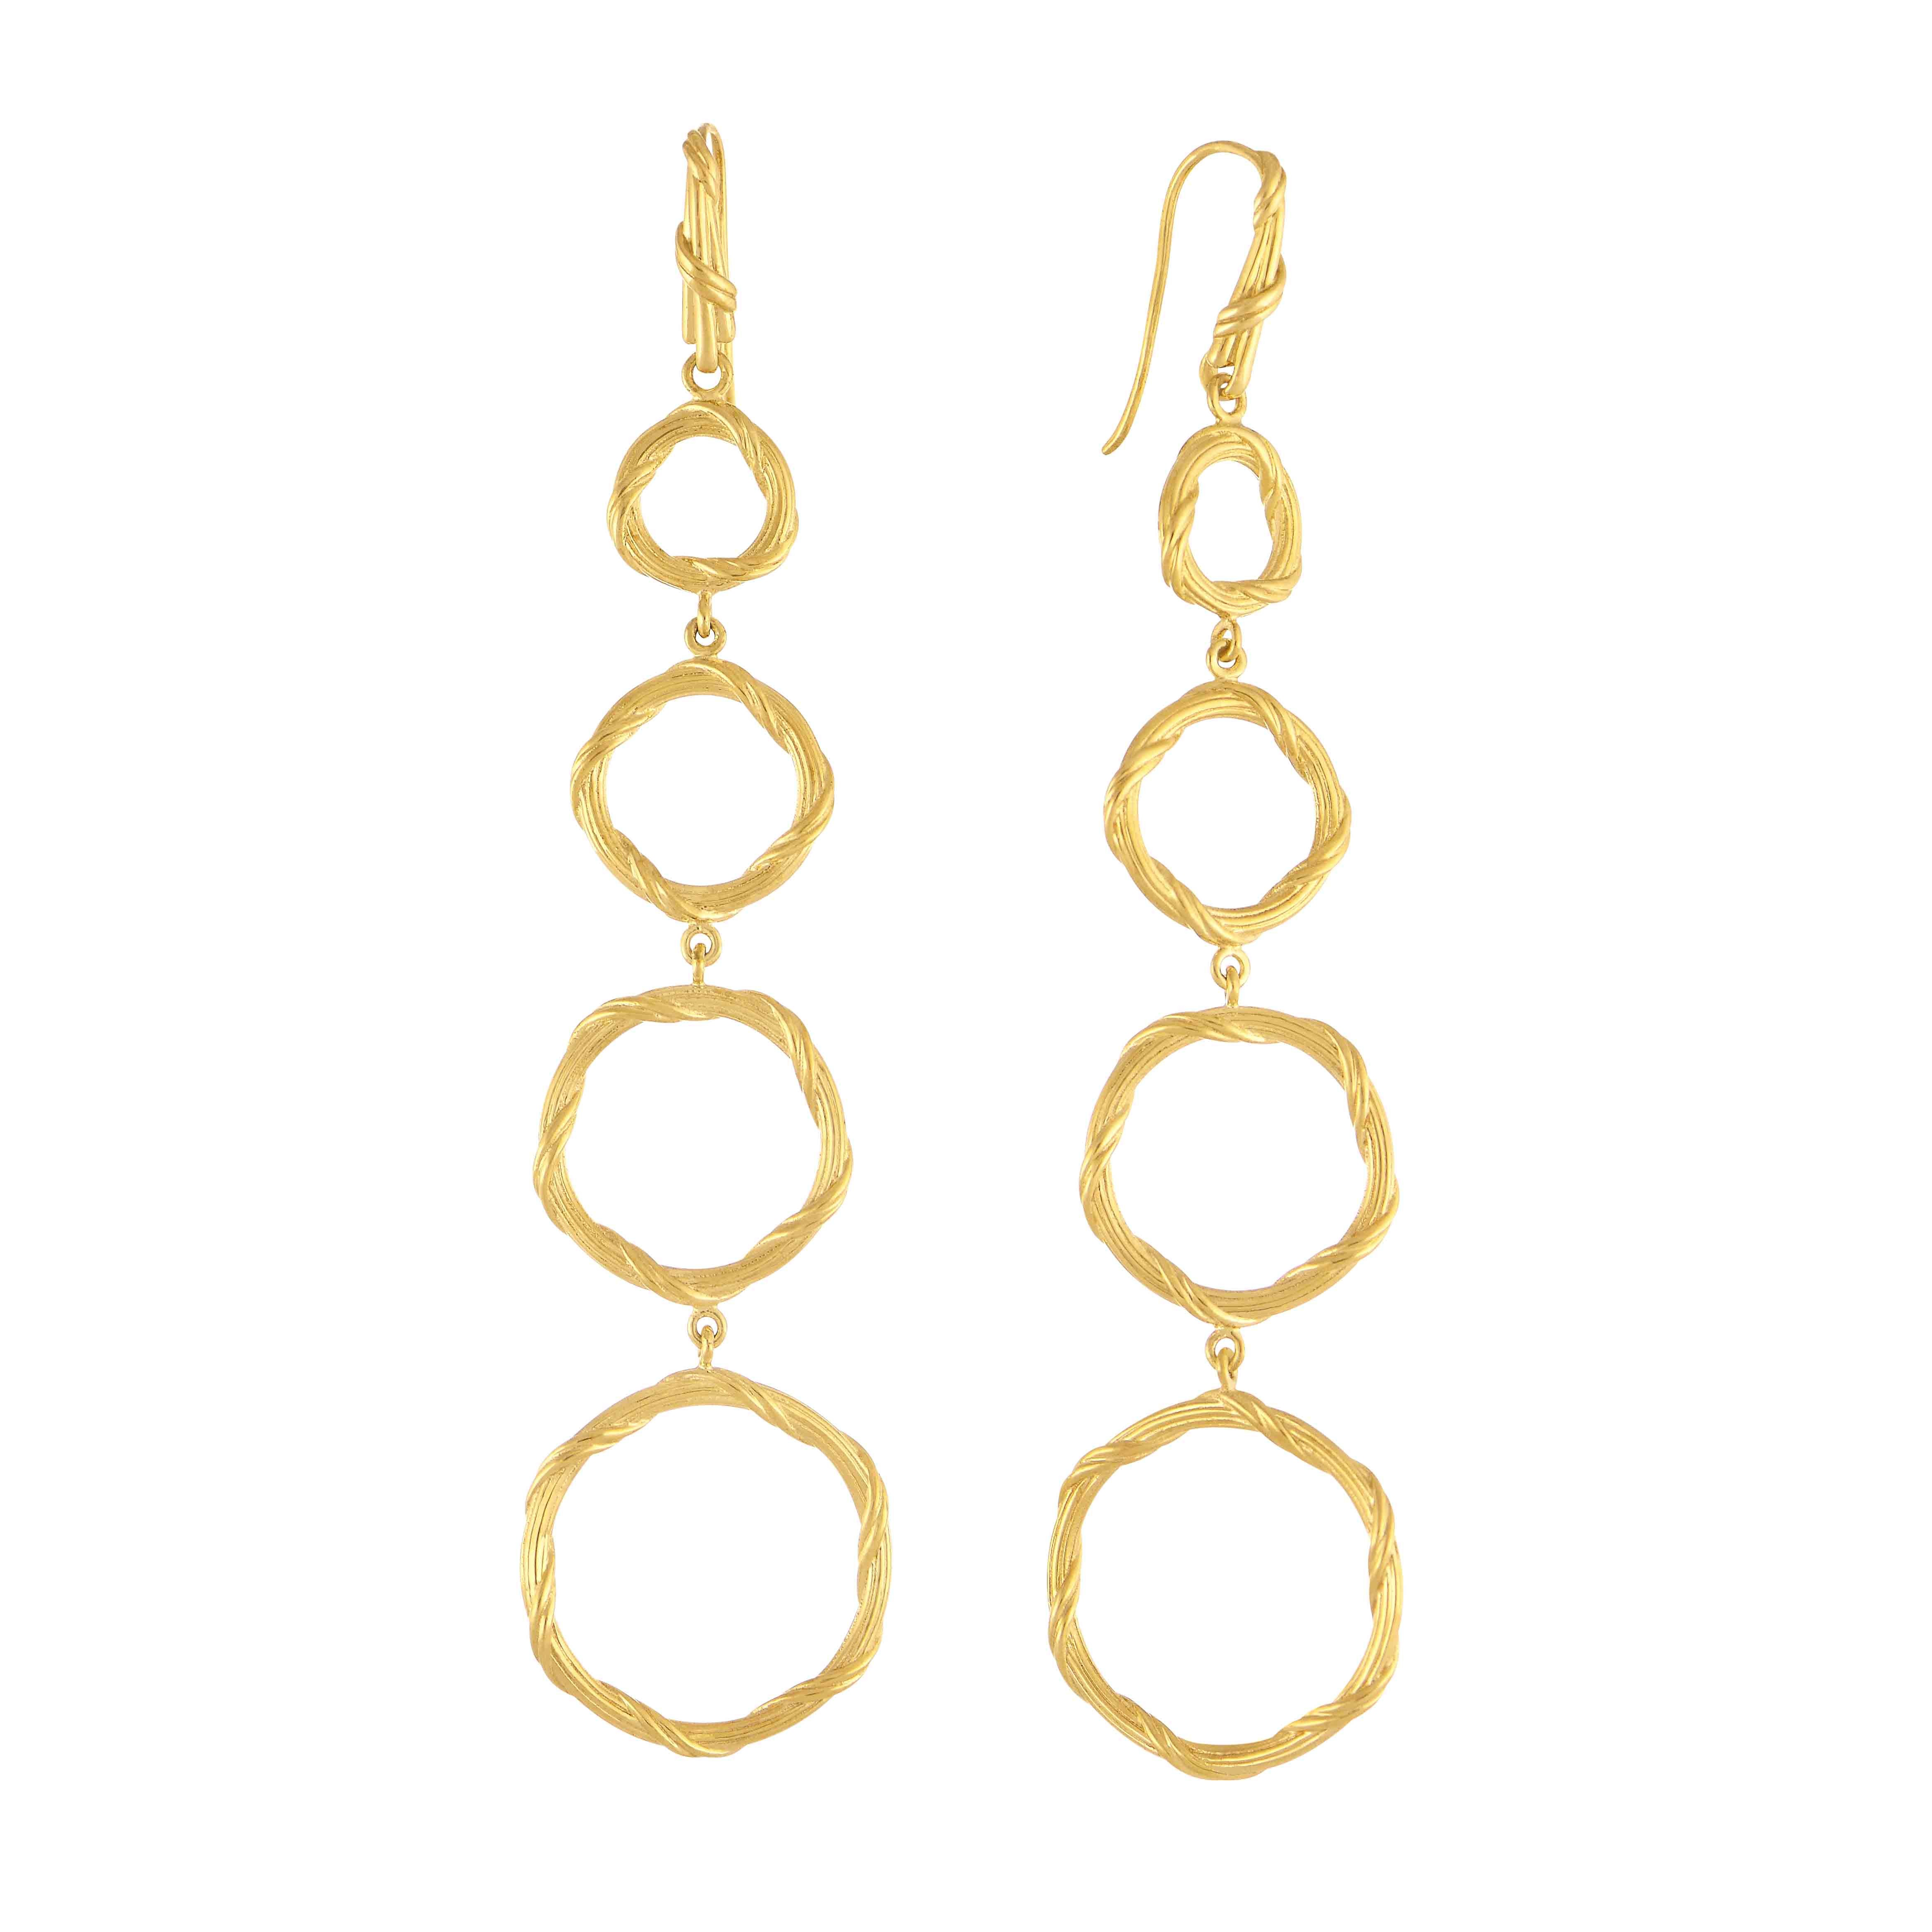 Heritage Circle Drop Earrings in 18K Yellow Gold